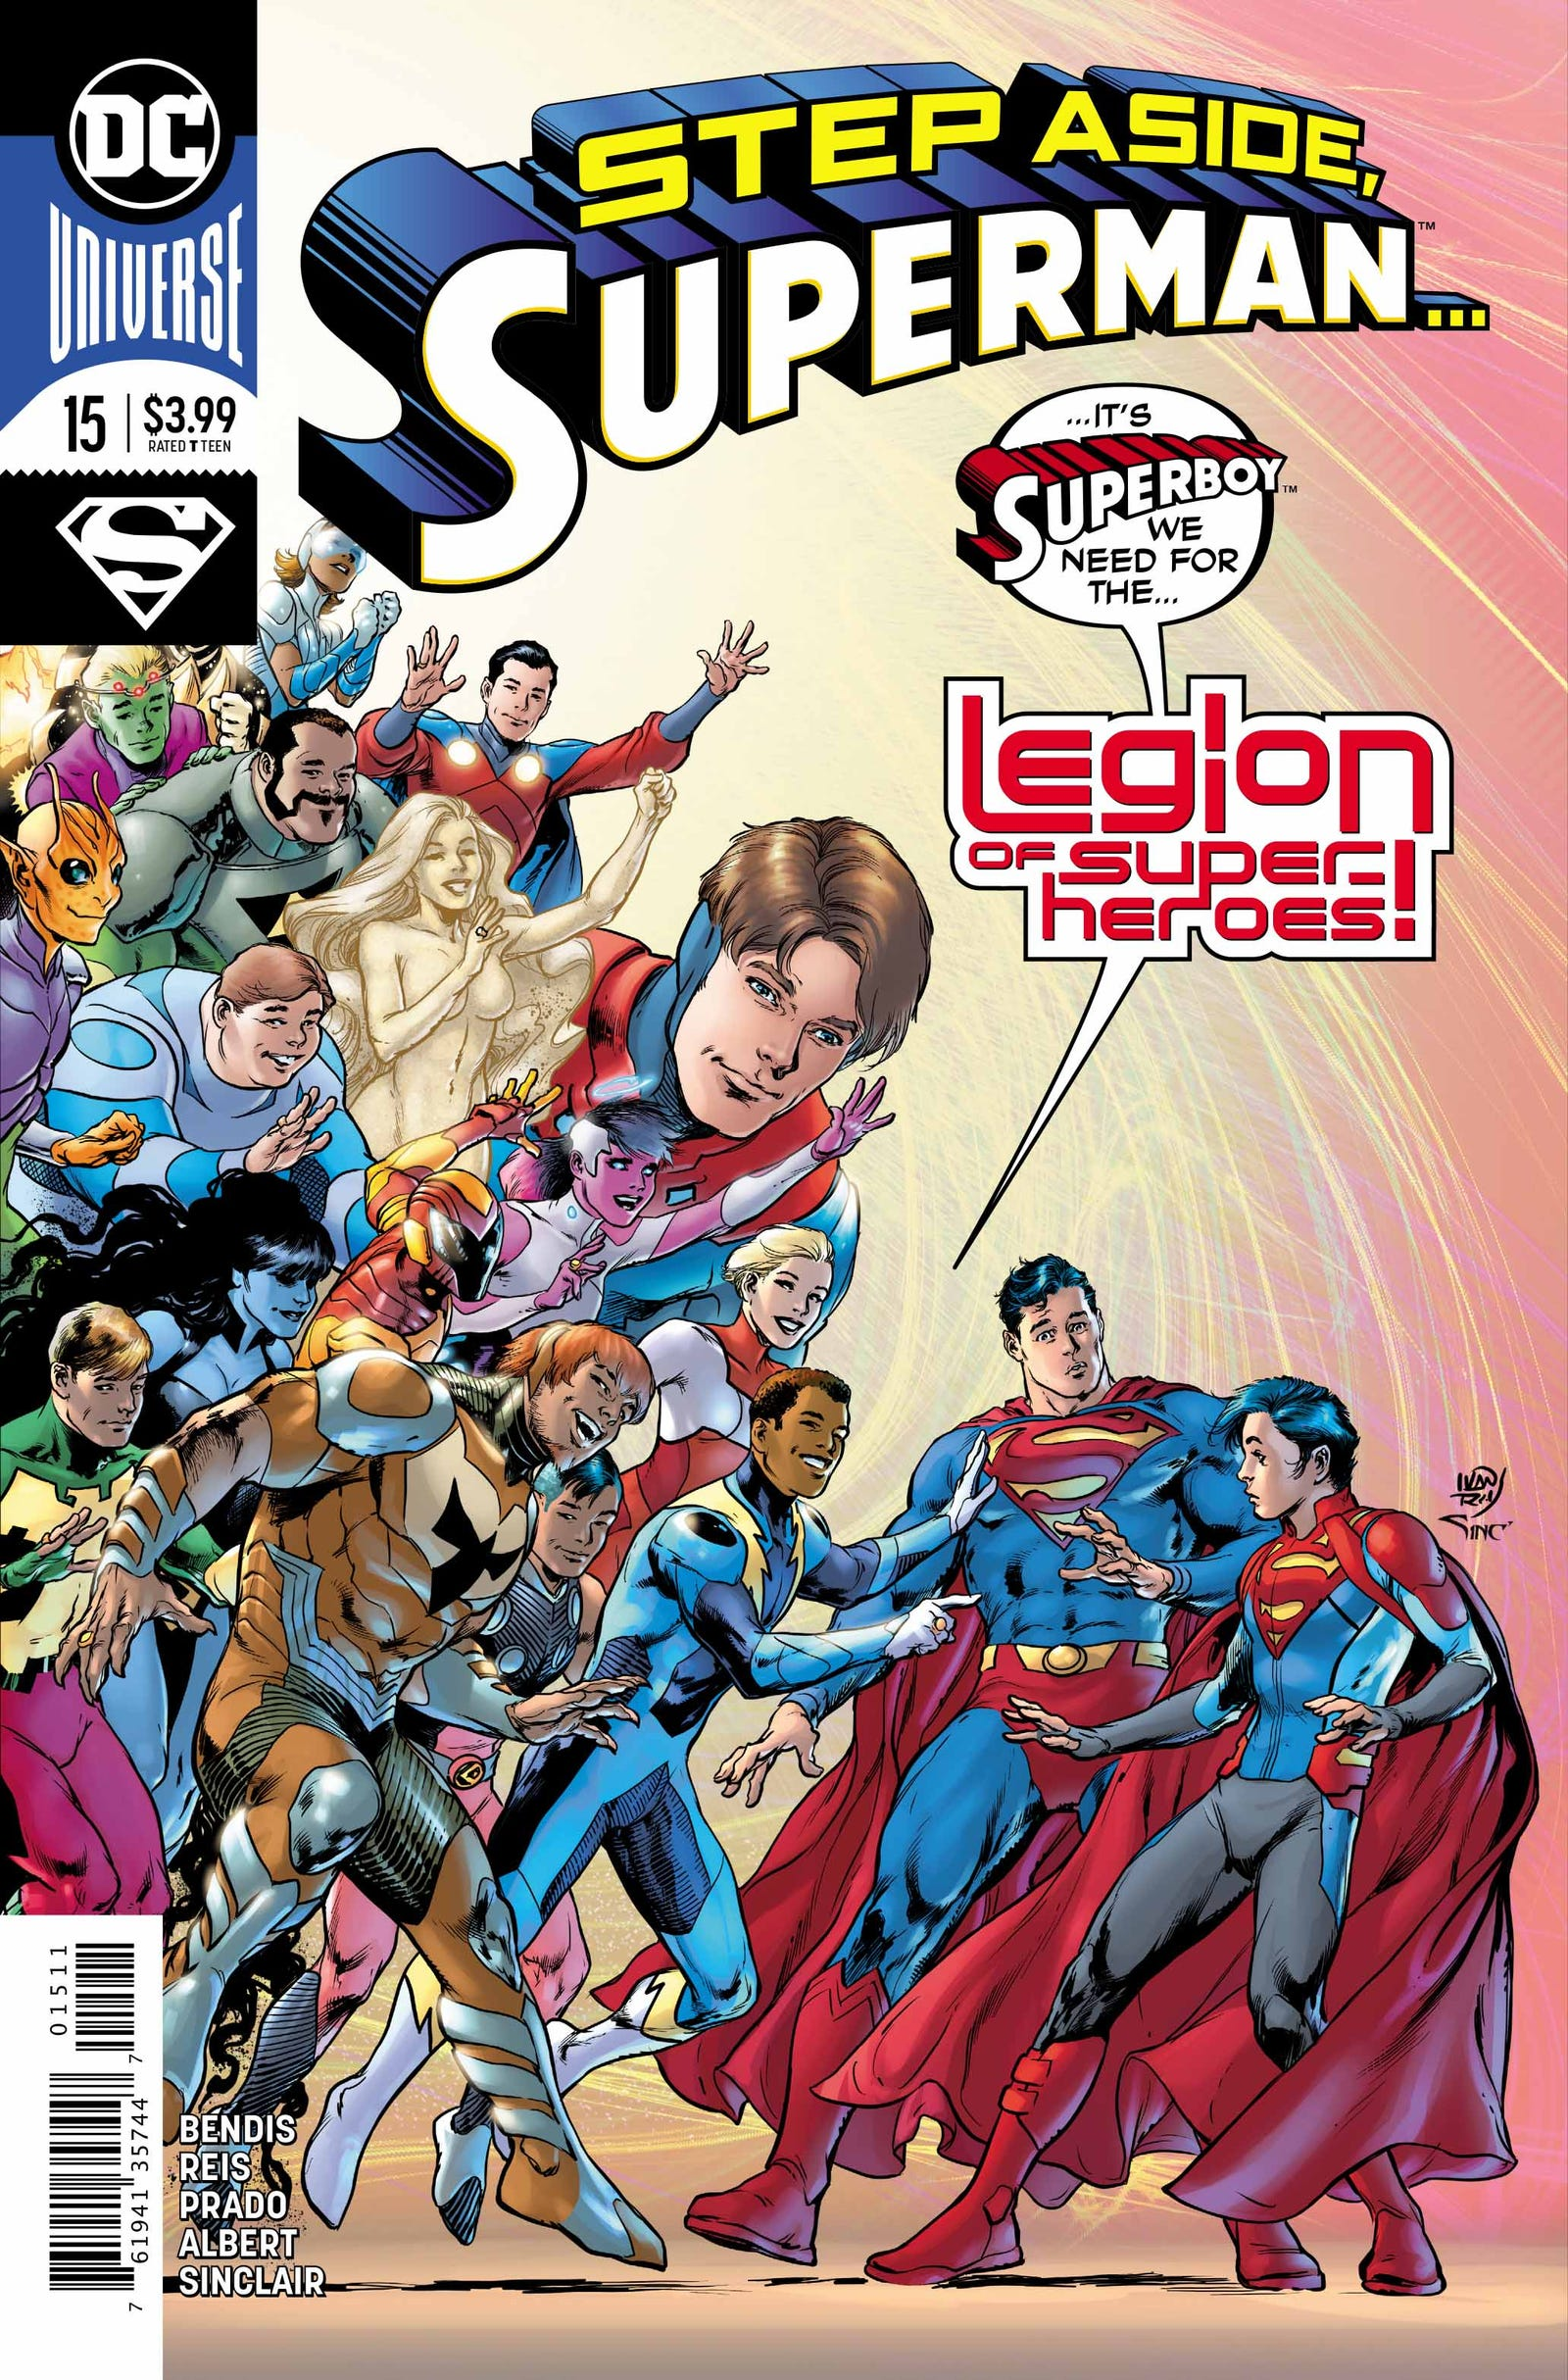 Cover by Ivan Reis, Joe Prado, and Alex Sinclair